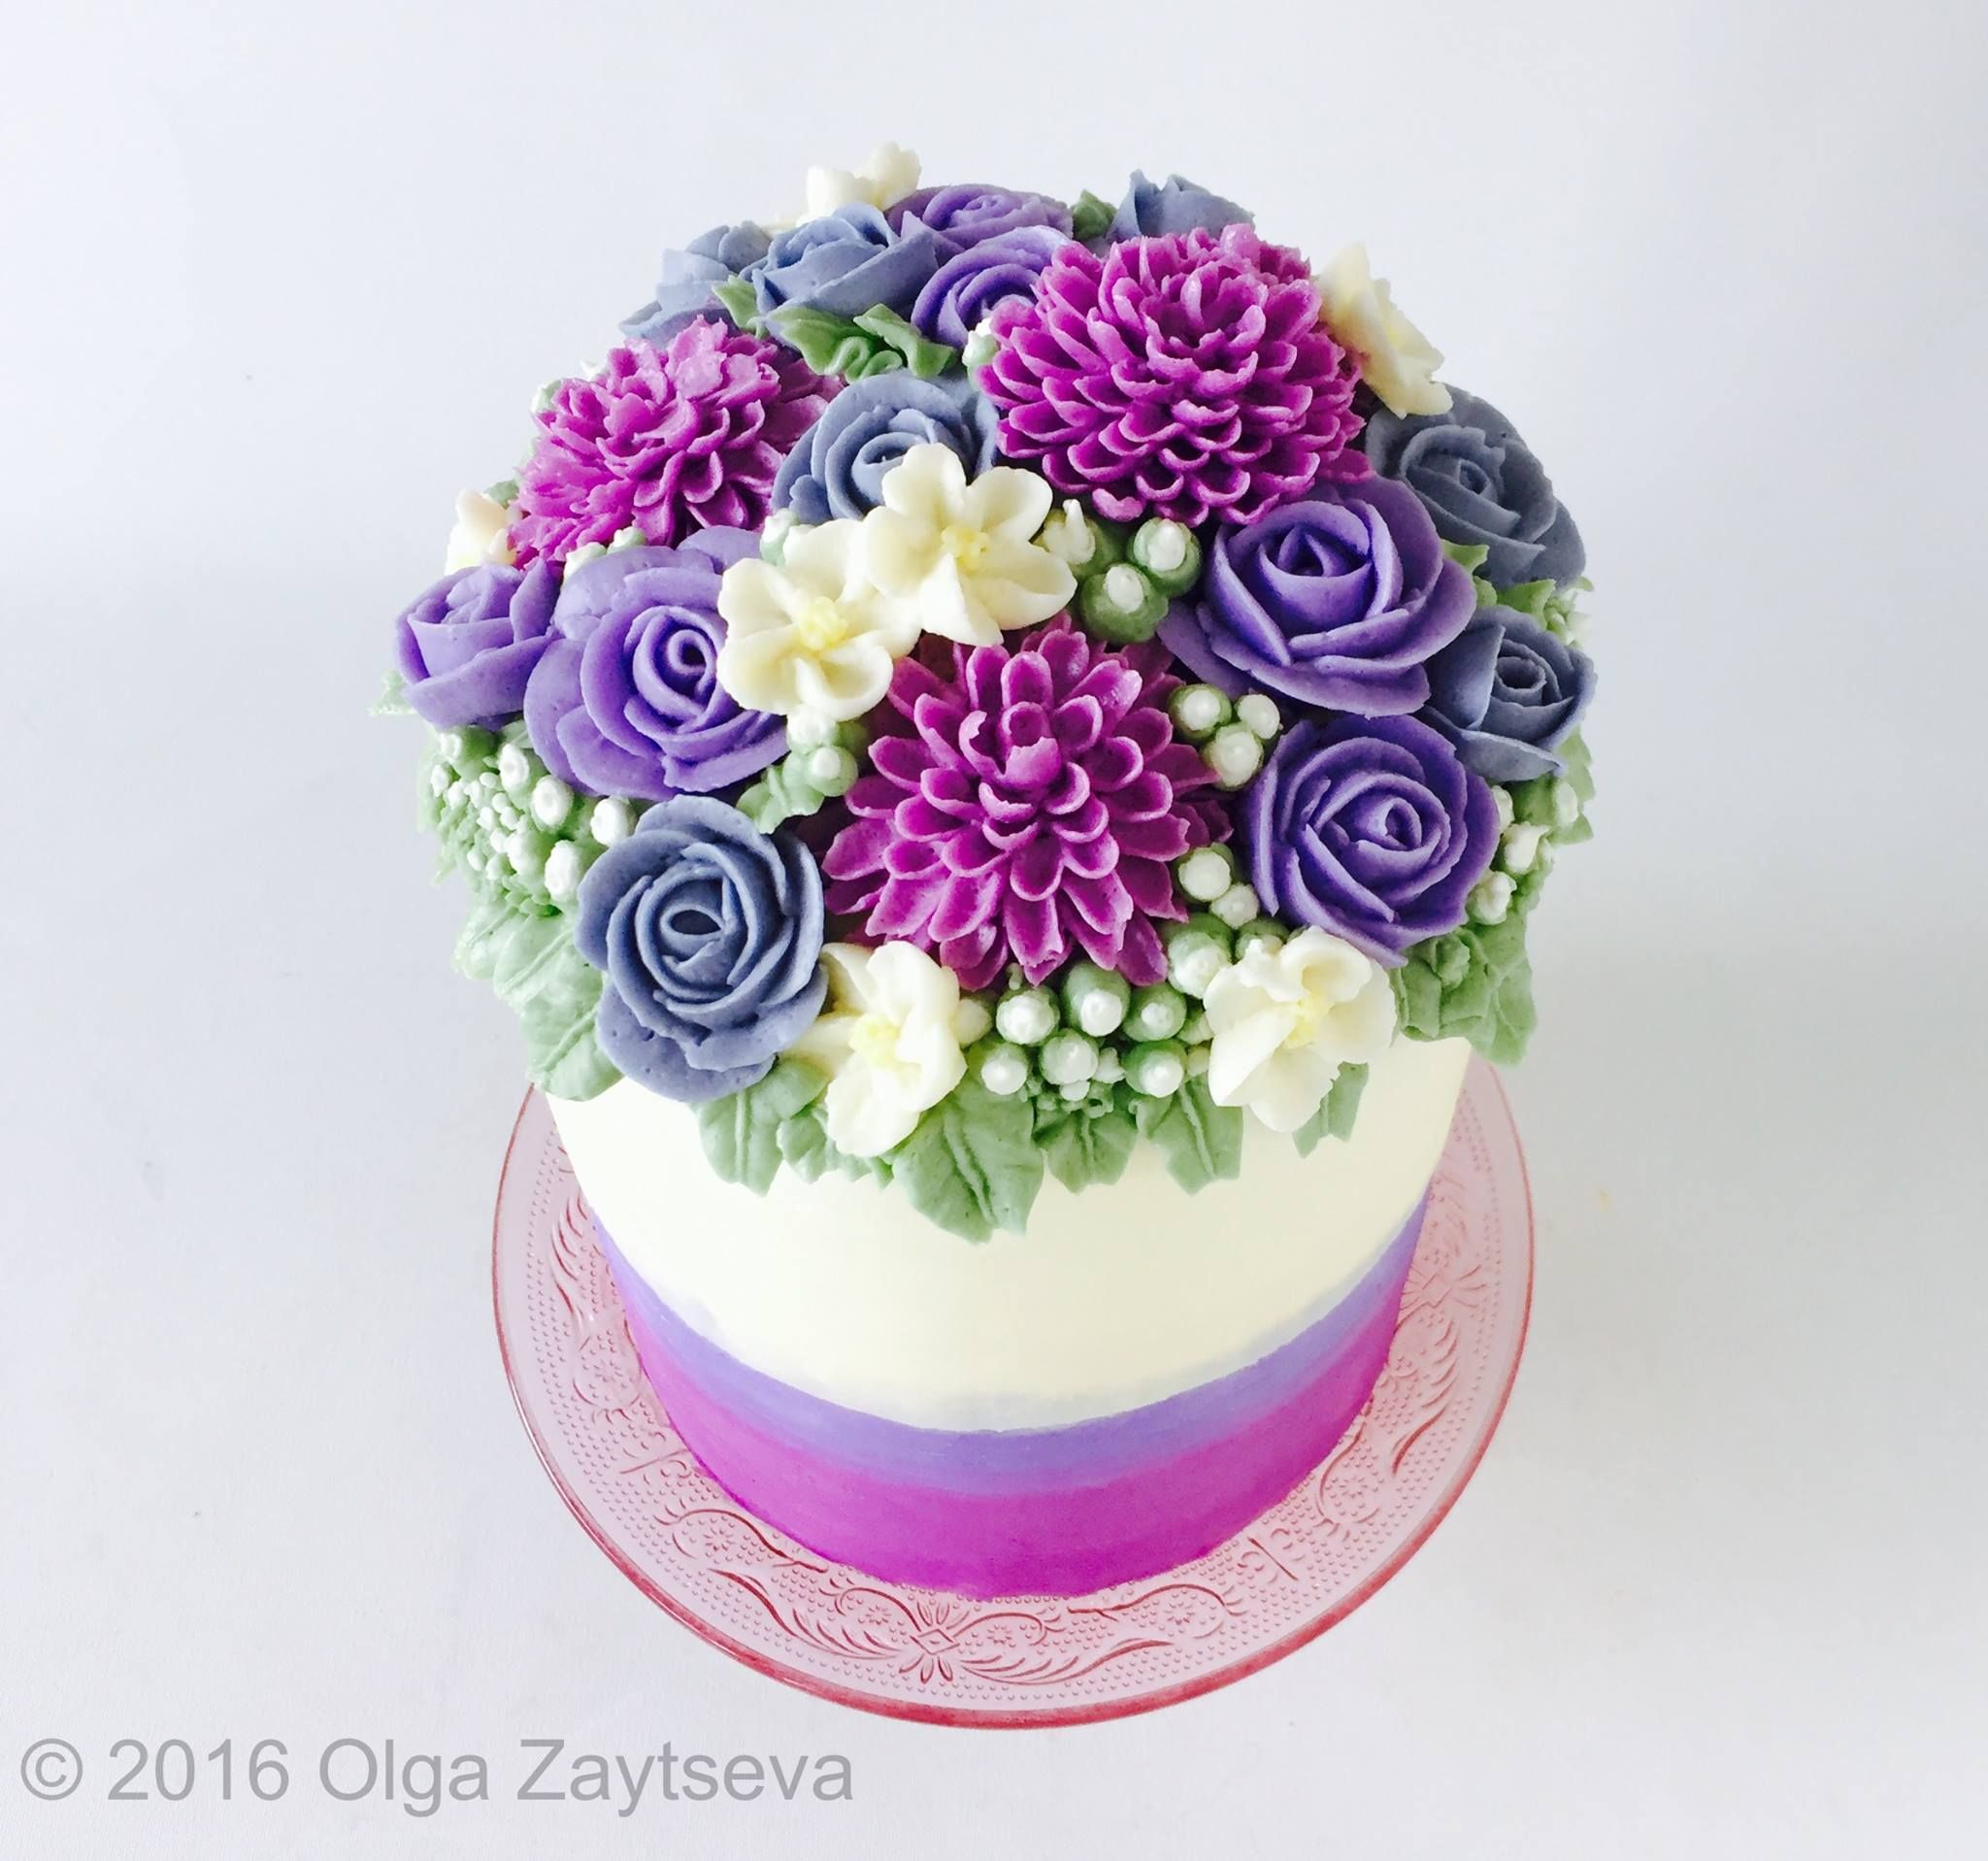 Buttercream Dahlia And Rose Flower Cake By Olga Zaytseva Buttercream Flower Cake Butter Cream Cake Tutorial